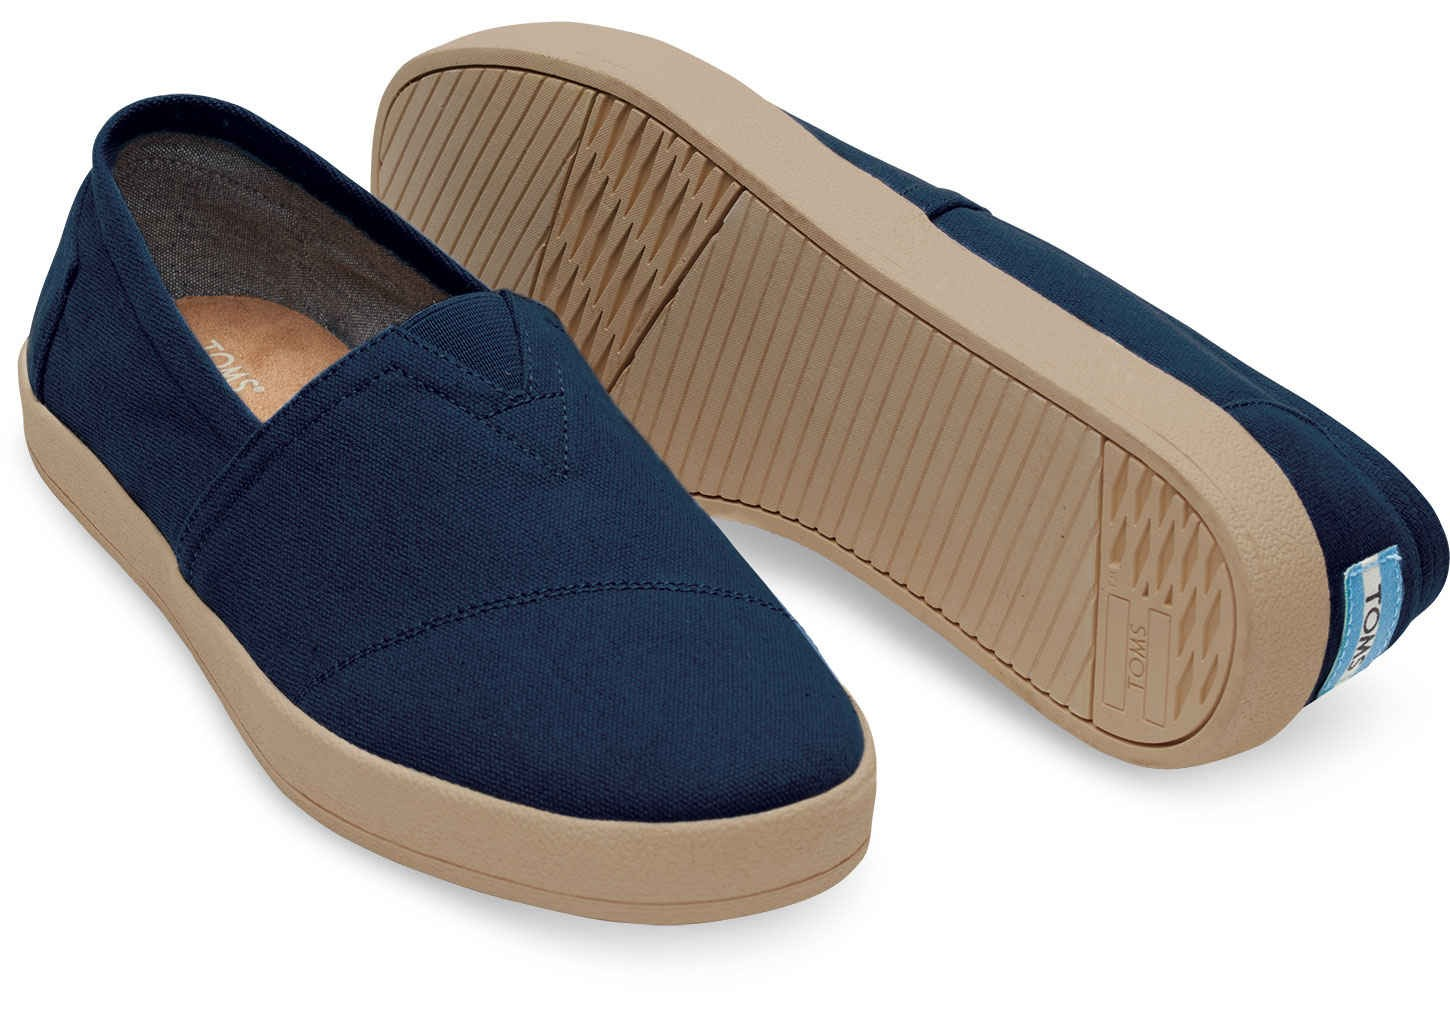 Toms Men s Avalon Slip-Ons (S2016) Canada Online - Best Price Guaranteed 8aabade1dc